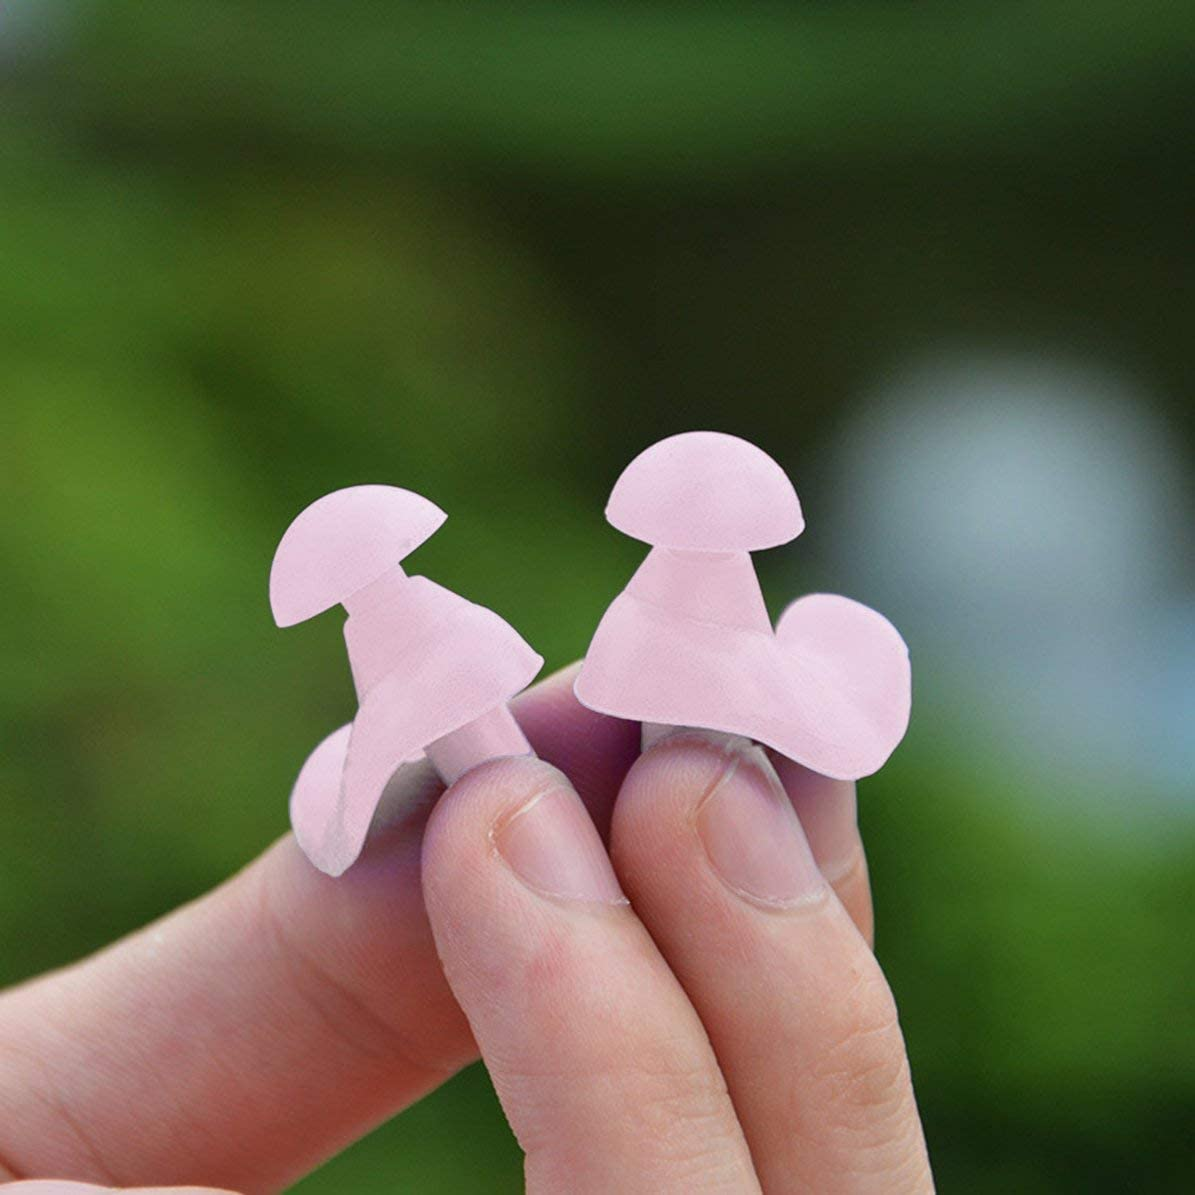 WEIWEITOE 1 Pair Waterproof Swimming Professional Silicone Swim Earplugs Soft Anti-Noise Ear Plug for Adult Children Swimmers,pink,